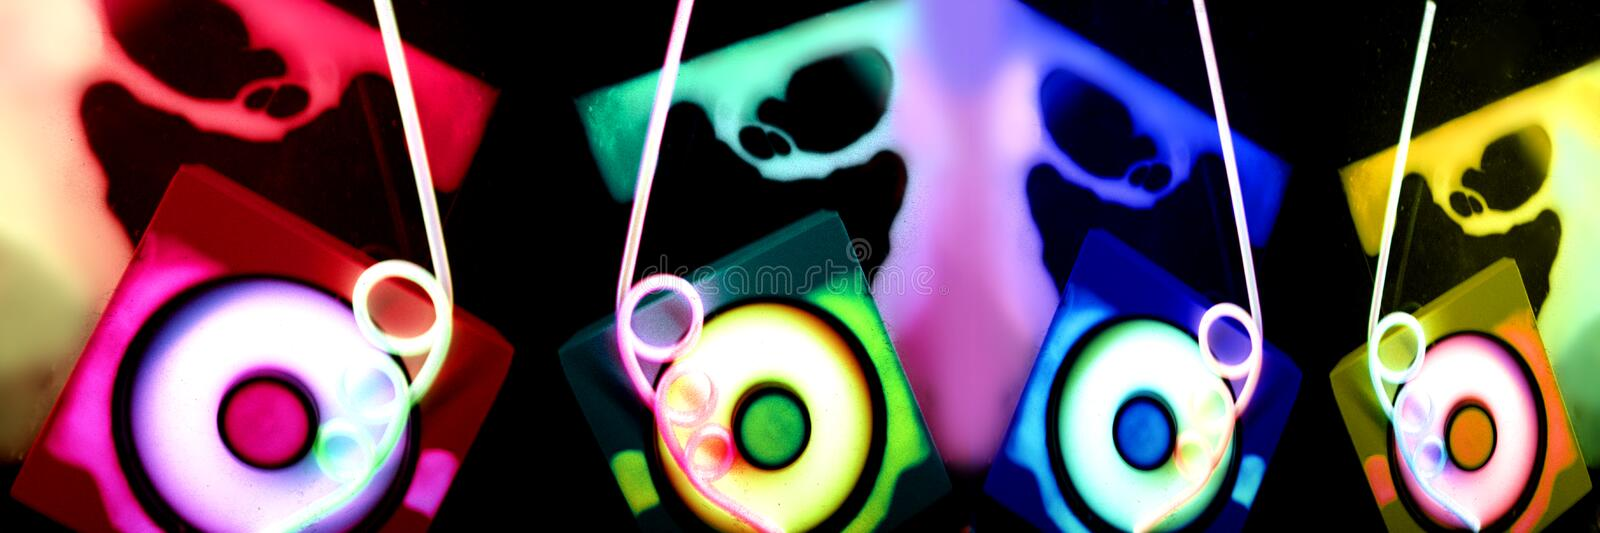 Techno color. Abstract wide-angle shot with phosphorescent colors and techno shapes like CDs royalty free stock photos